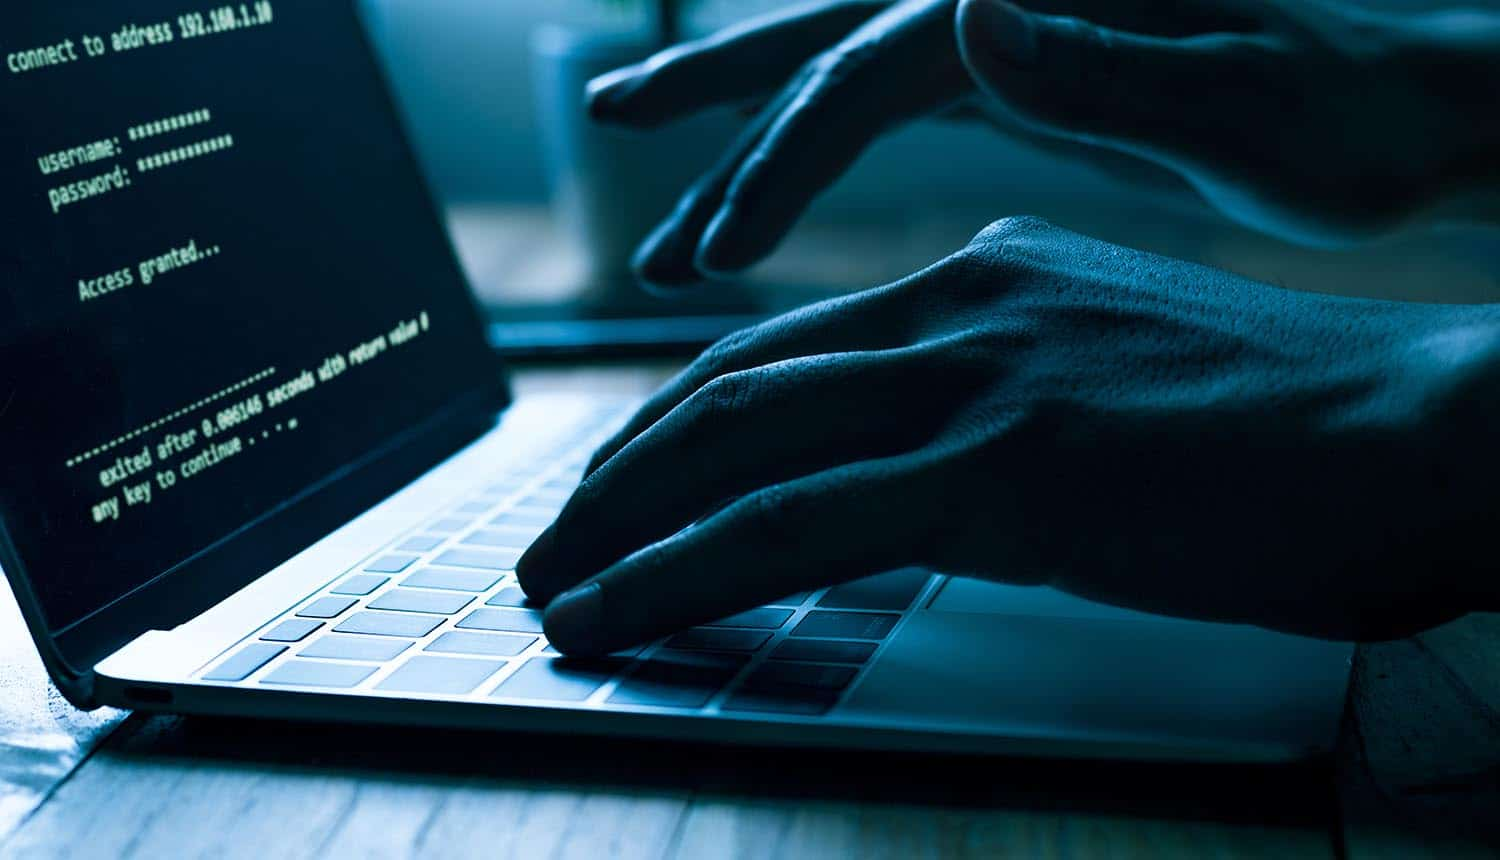 CISA Warns That Hackers Exploited Federal Agencies Through Pulse Connect Secure VPN Vulnerabilities